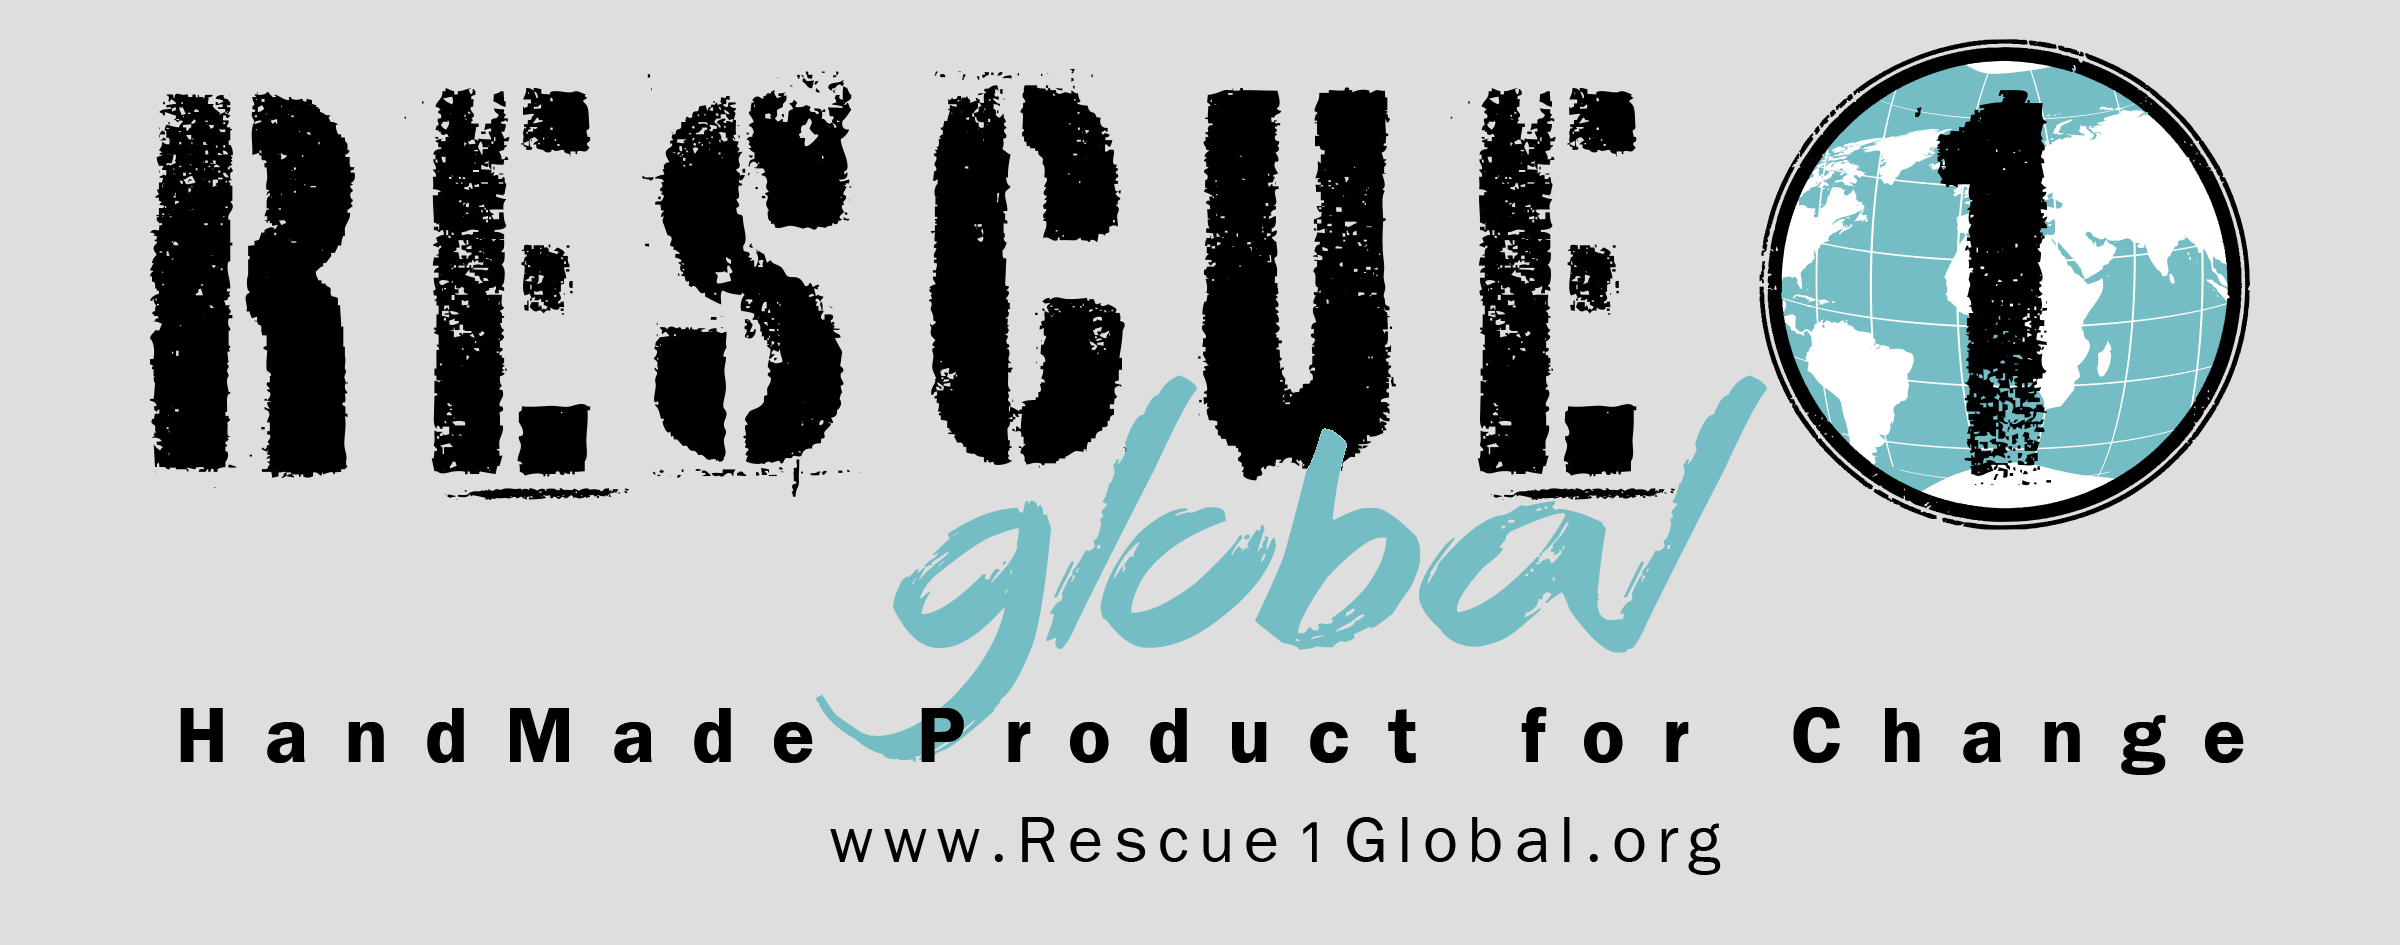 Rescue 1 Global